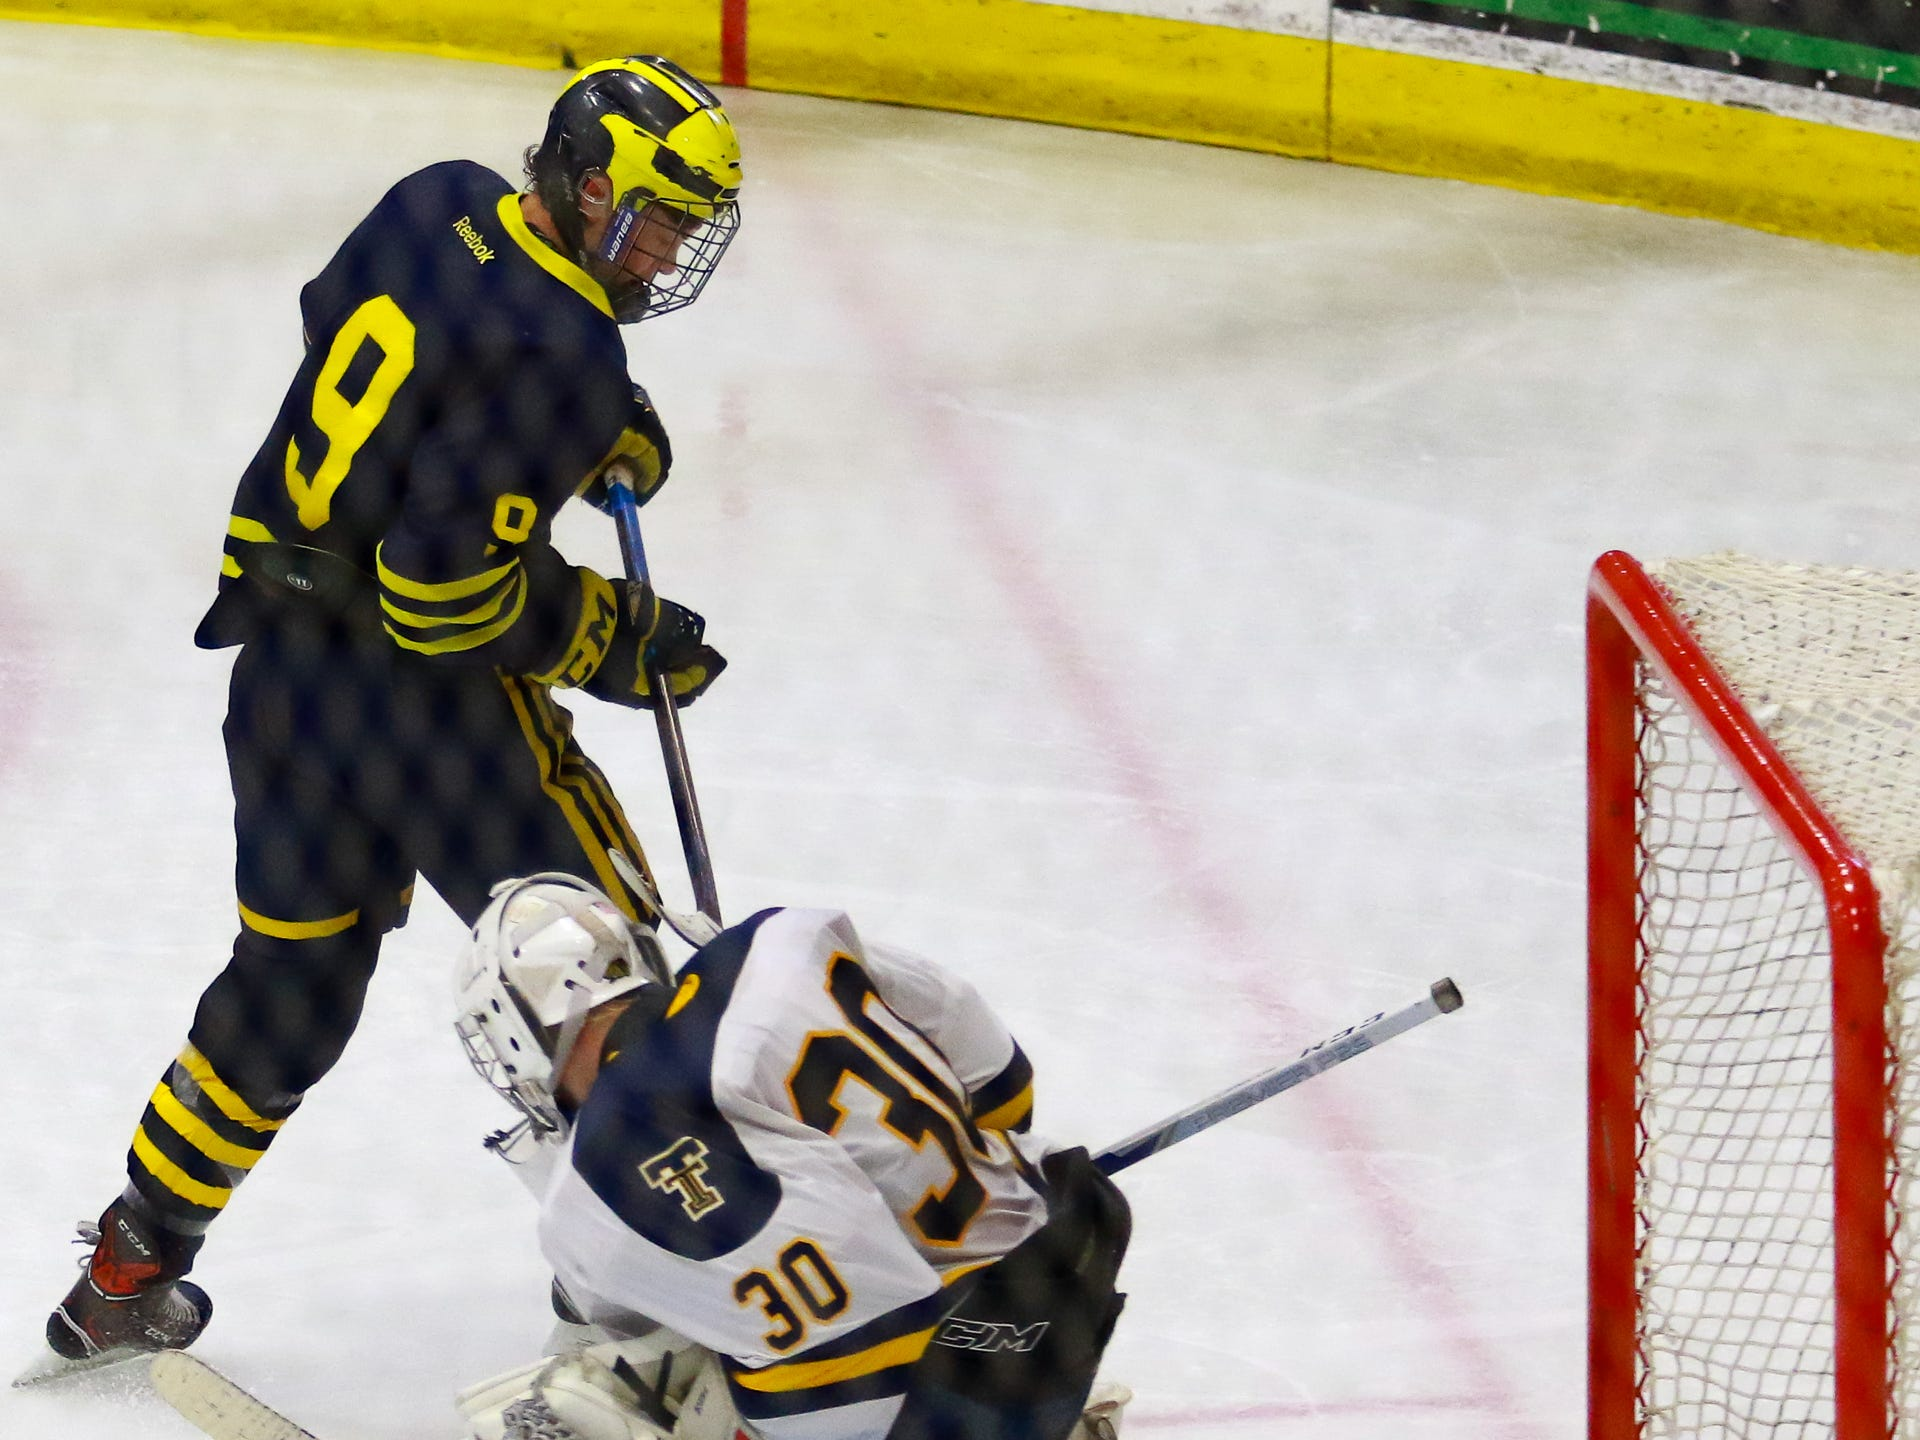 Hartland's Joey Larson narrowly misses a goal against goalie Joey Cormier in a 4-0 victory over Trenton in the state Division 2 championship hockey game on Saturday, March 9, 2019 at USA Hockey Arena.